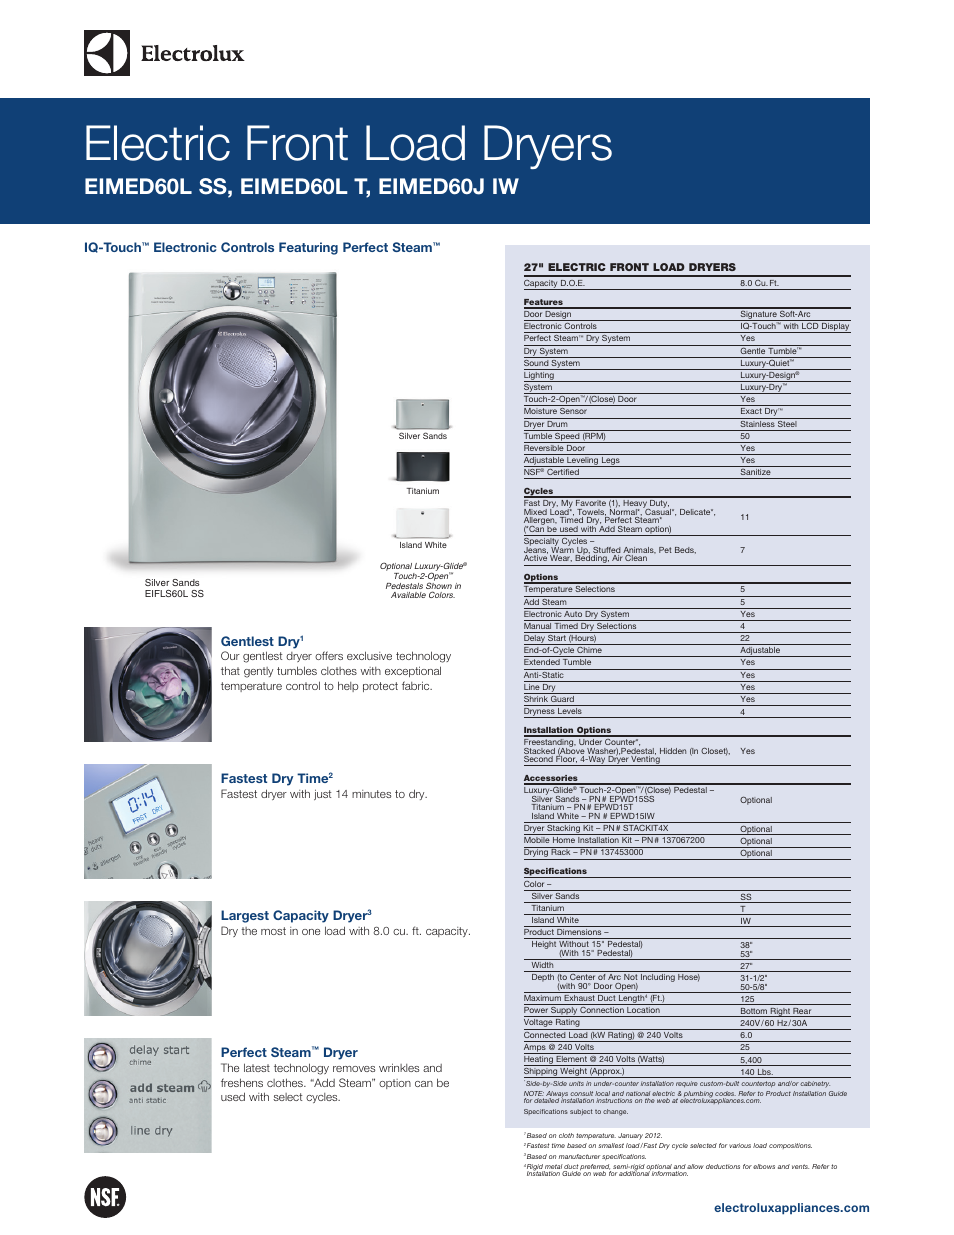 electrolux eimed60lt user manual 2 pages rh manualsdir com Electrolux Dryer Recalls Electrolux Dryer Recalls